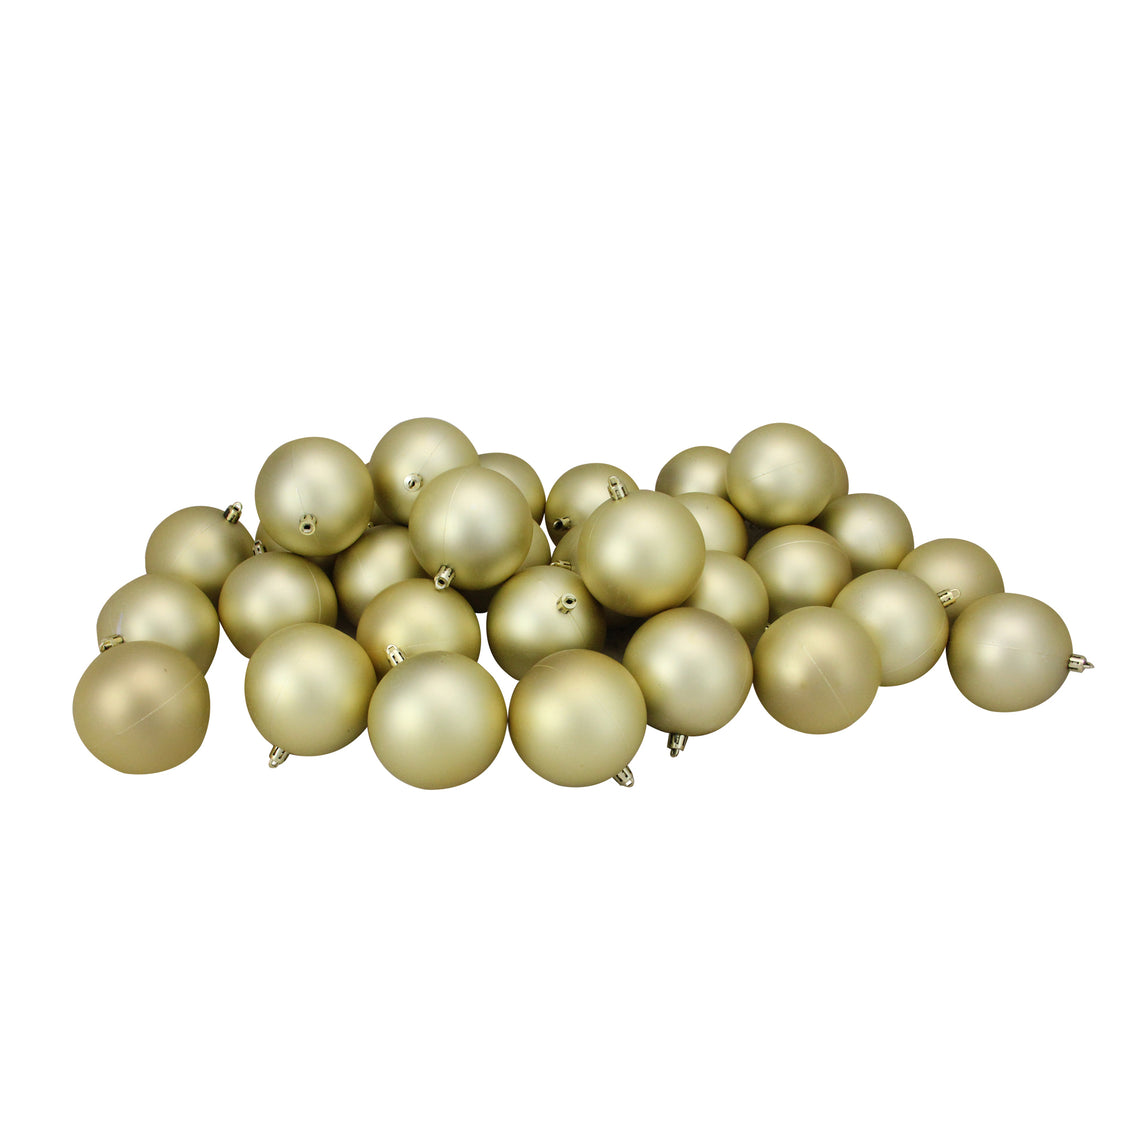 32Ct Champagne Gold Shatterproof Matte Christmas Ball Ornaments 3.25